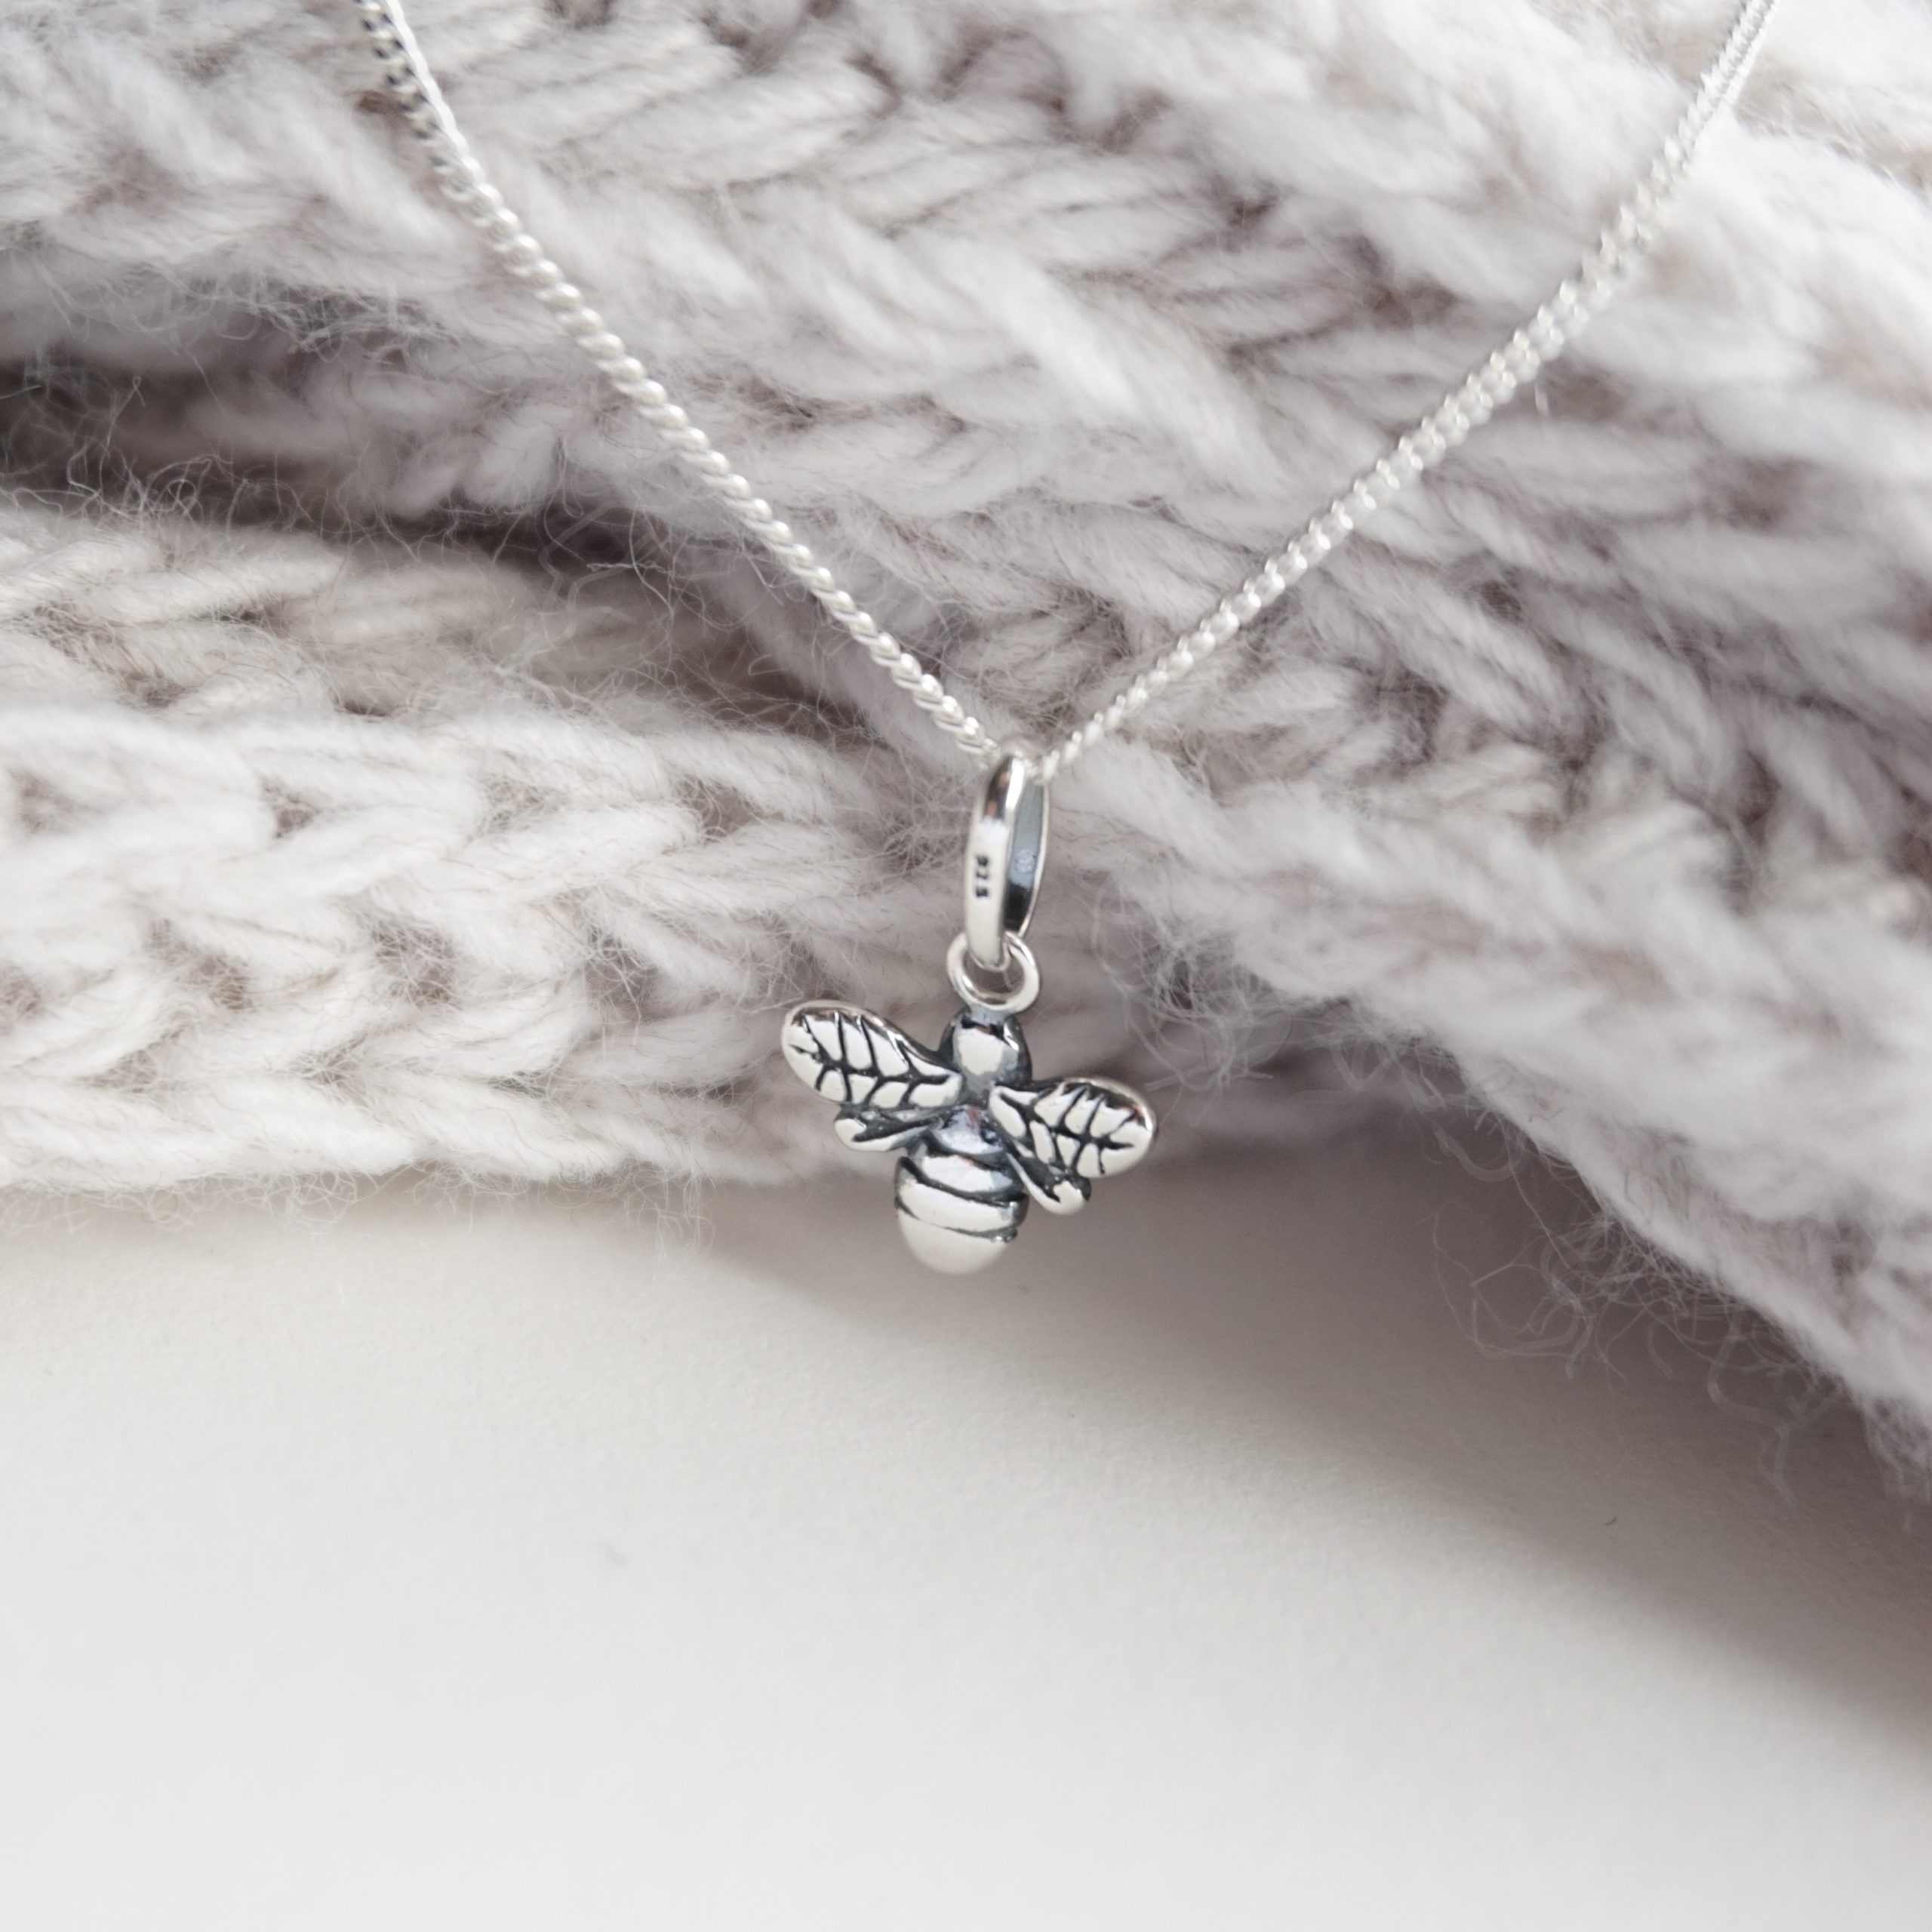 Sterling silver necklace with buzzy bee charm